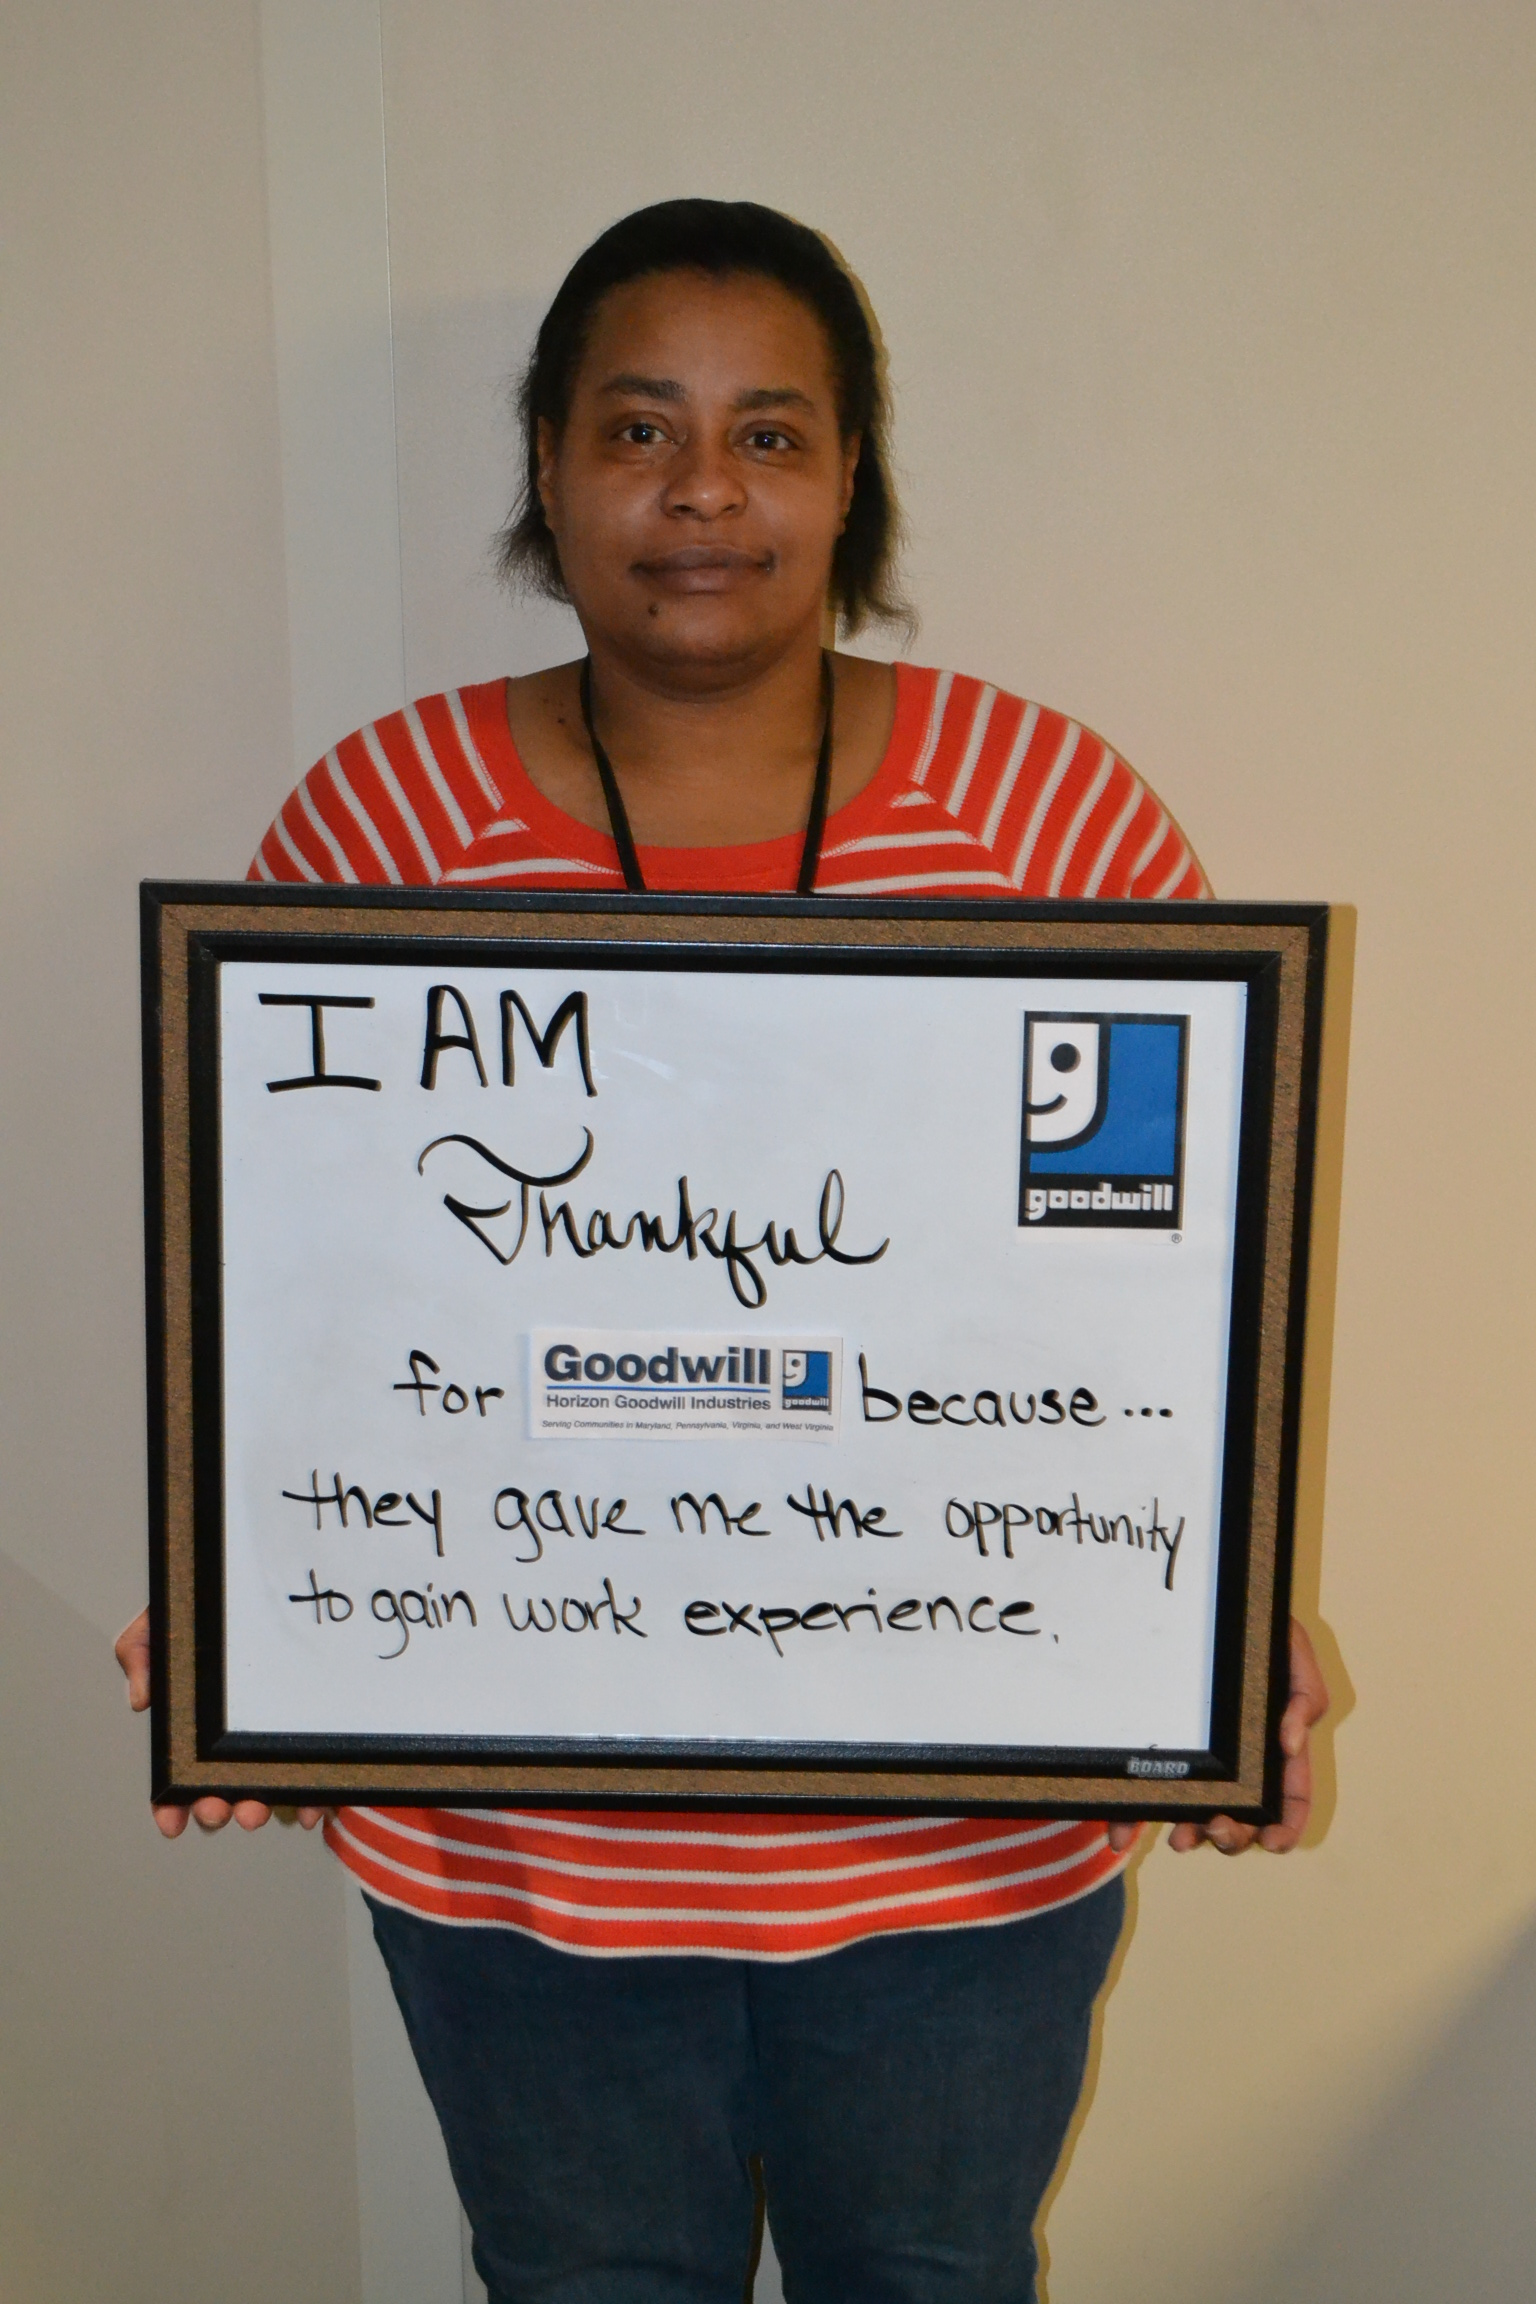 Horizon Goodwill Gave Me The Opportunity To Gain Work Experience